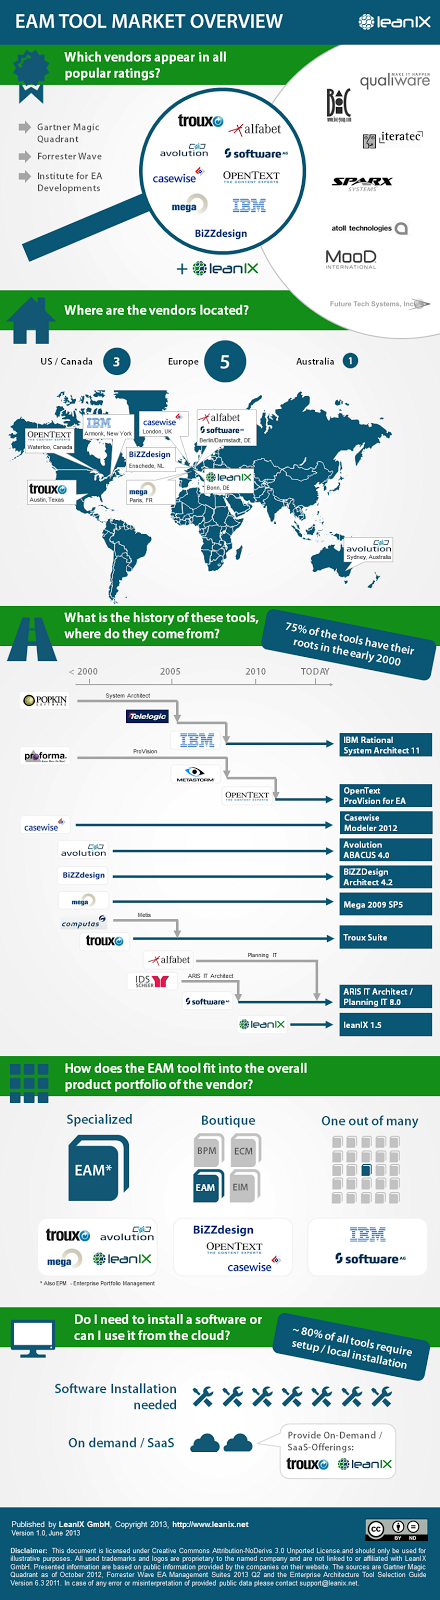 Infographic: Updated EAM Tool Market - Software AG acquires alfabet AG